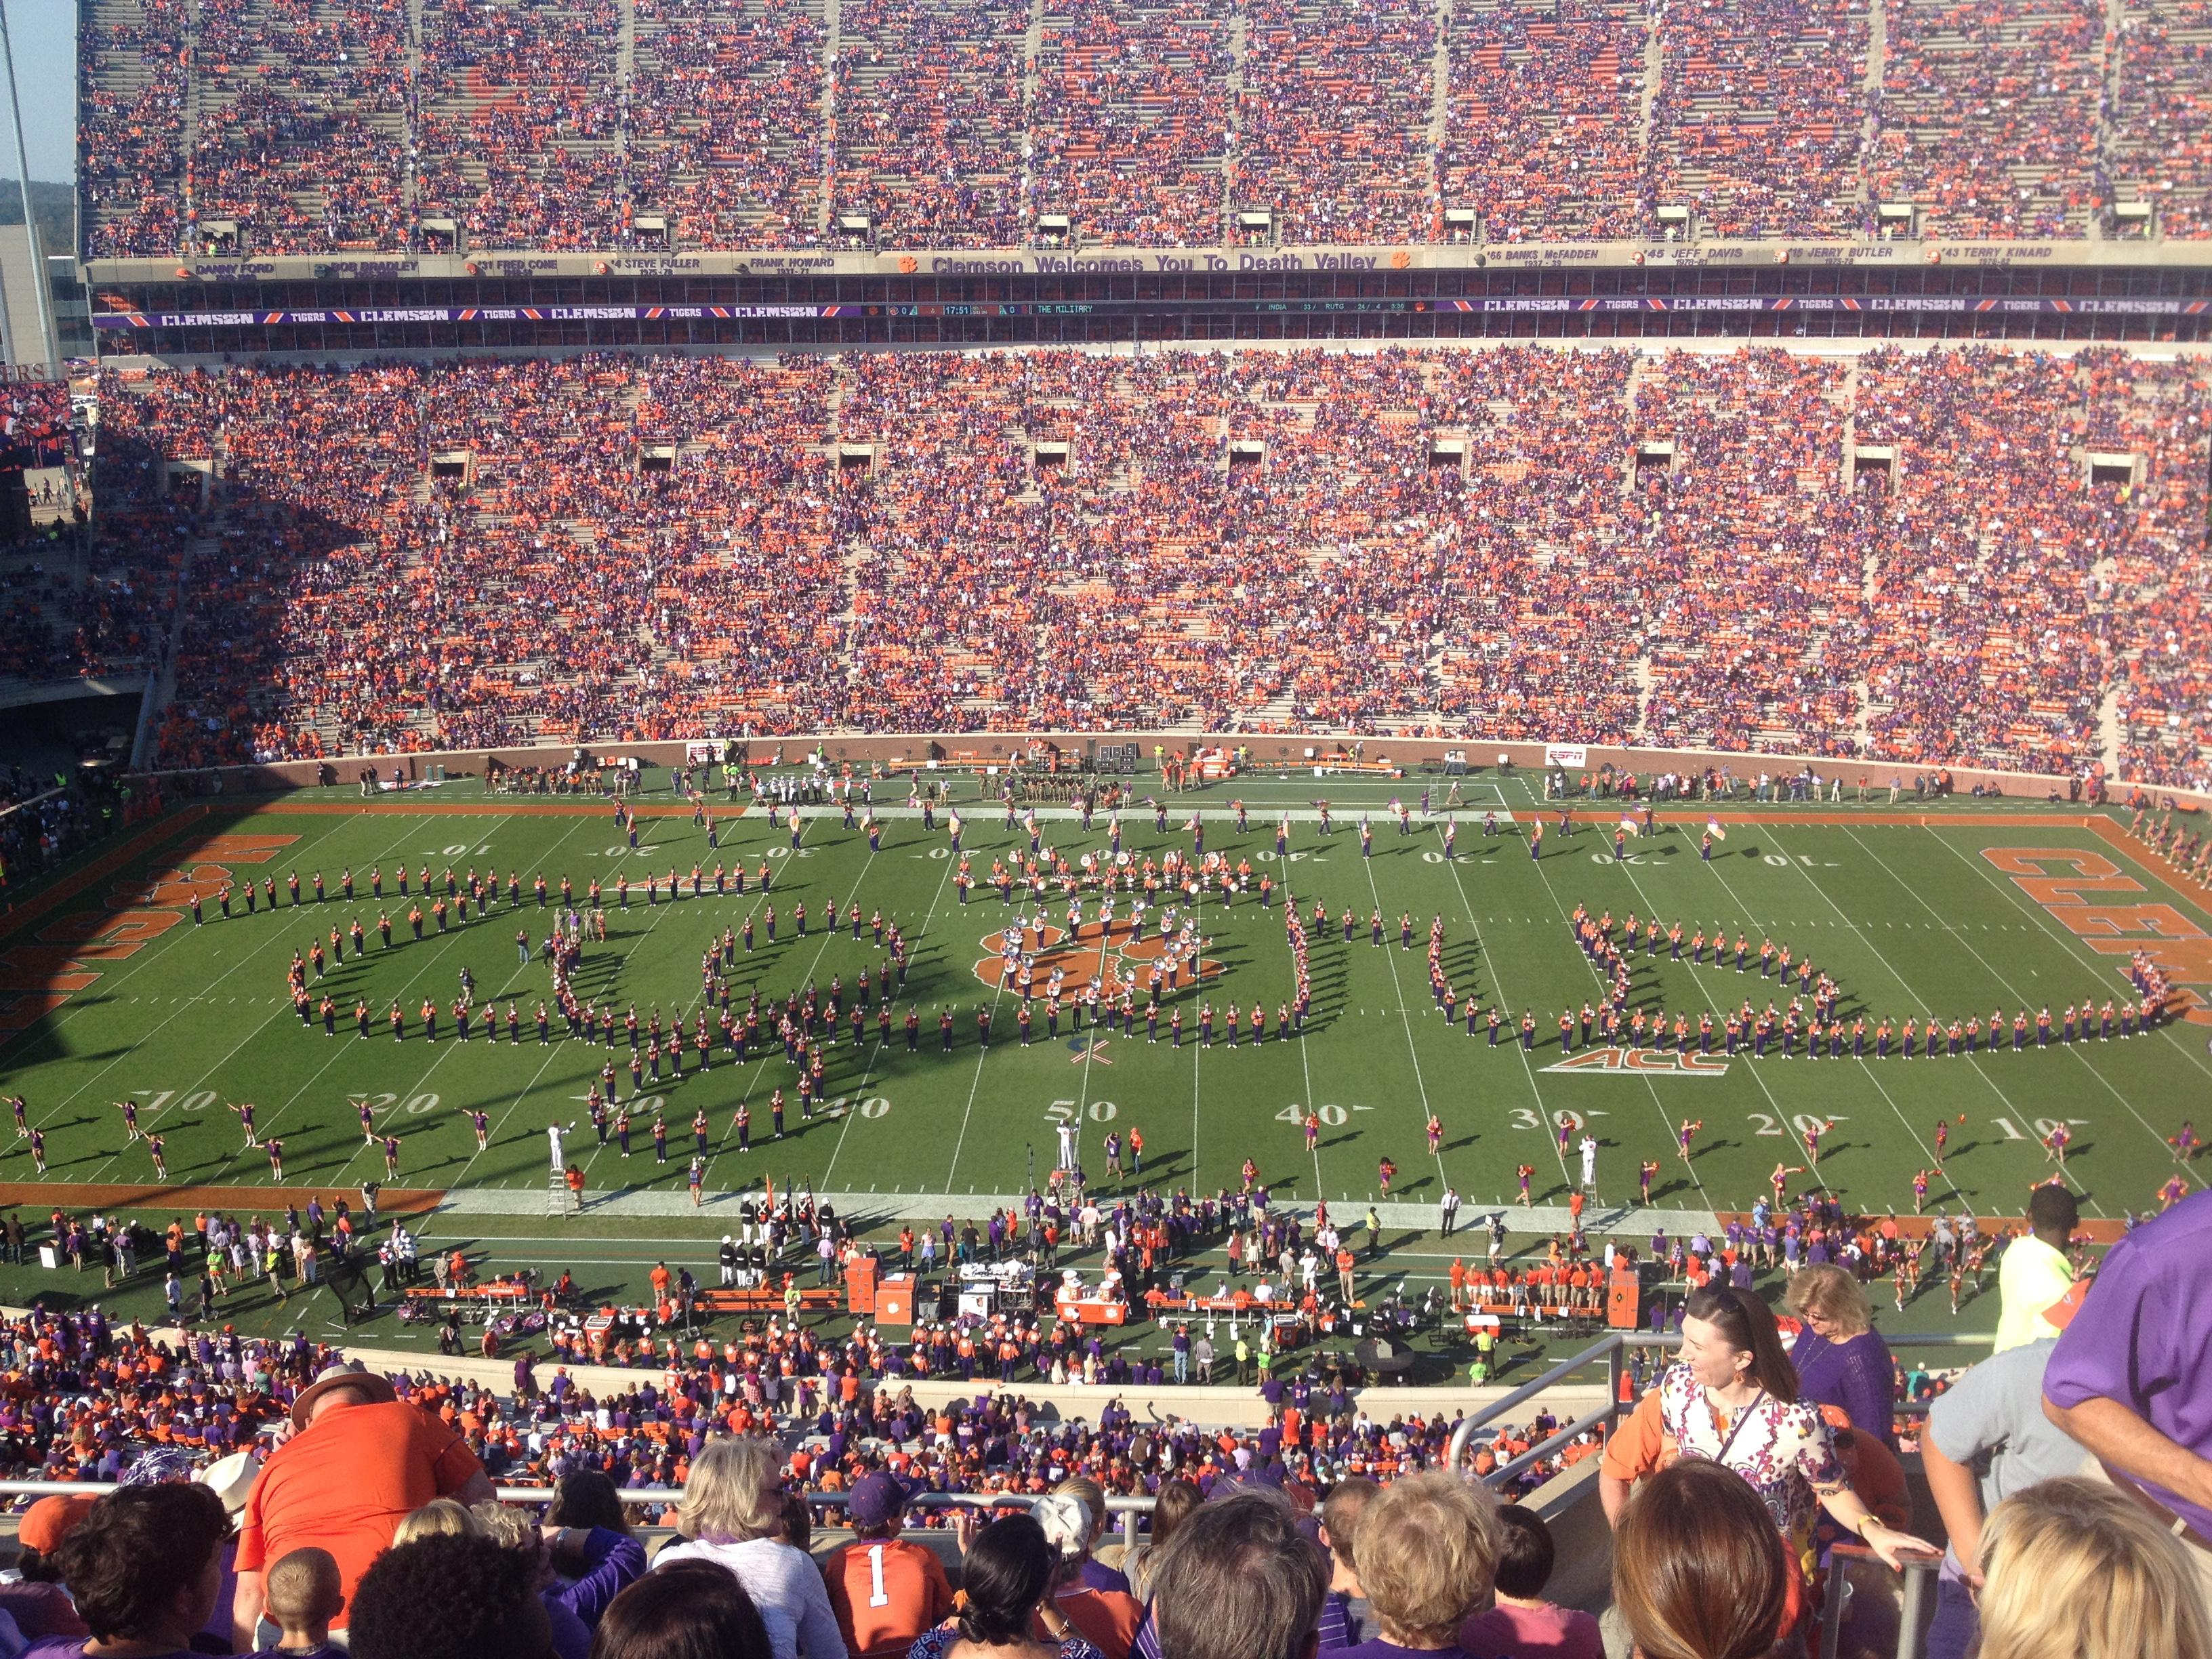 Memorial Stadium, Clemson Section TDE Row G Seat 5-7